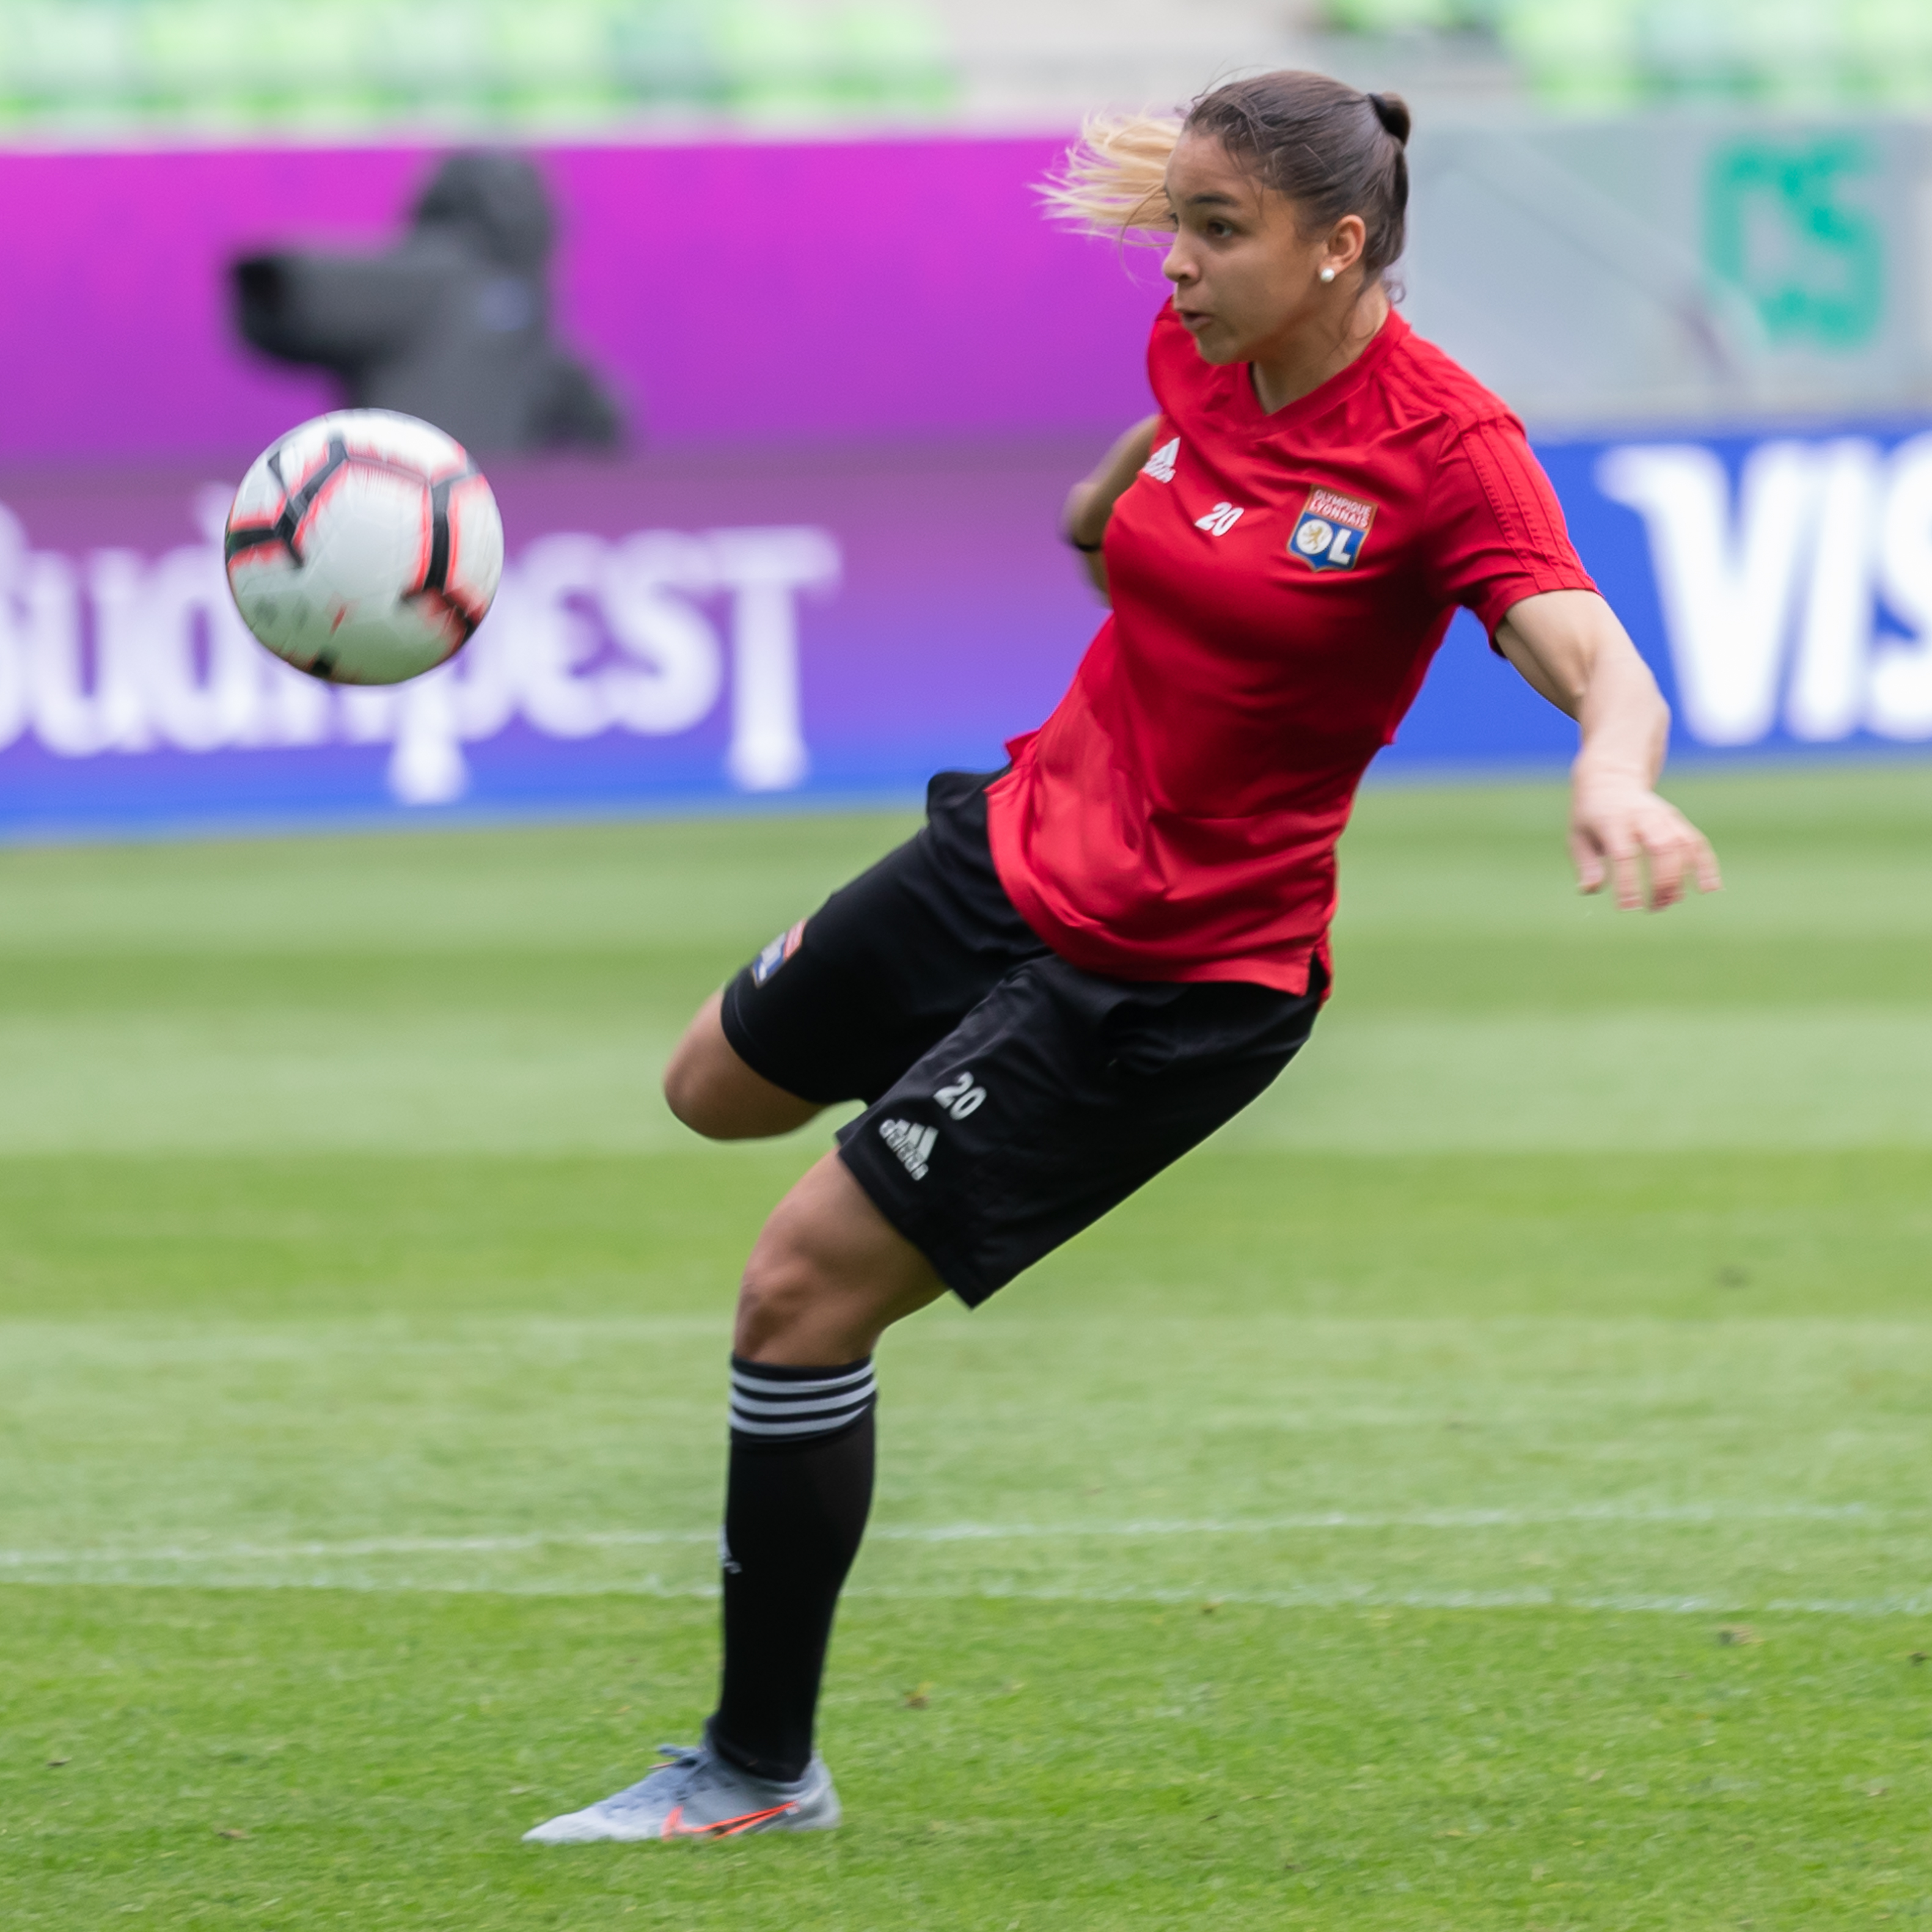 Champions League Womens: File:2019-05-17 Fußball, Frauen, UEFA Women's Champions